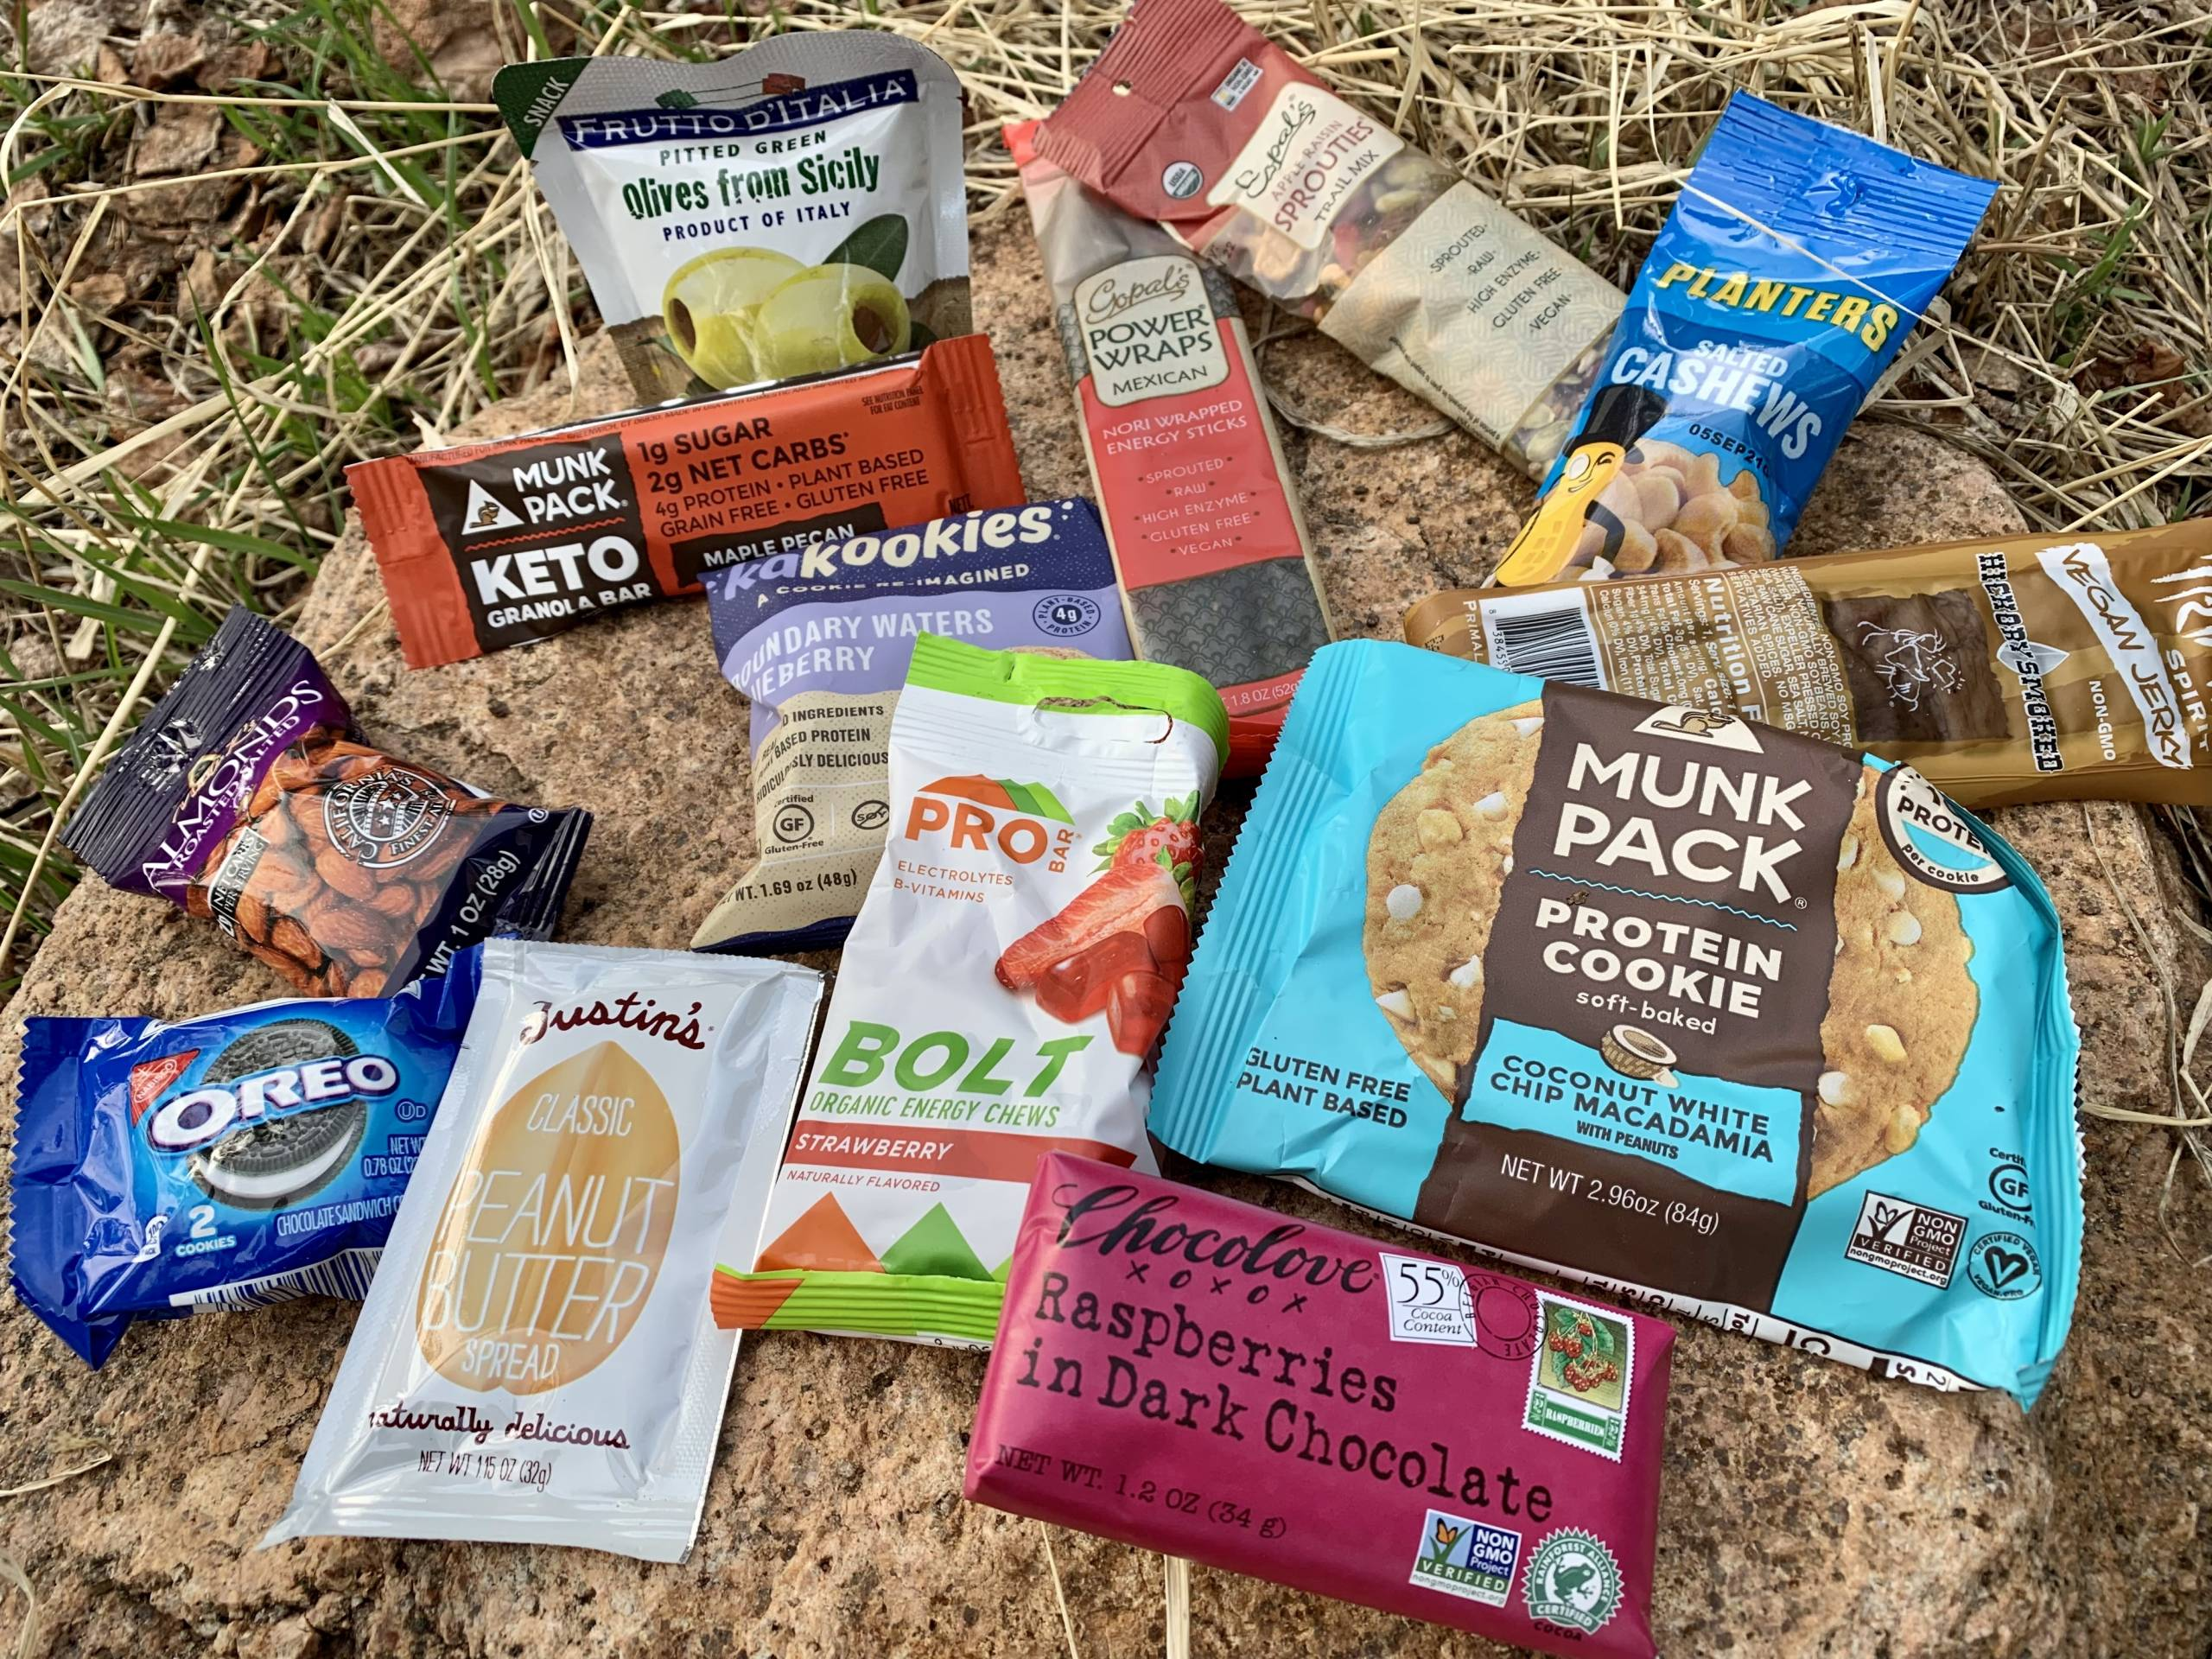 an assortment of RightOn Trek's snack options, bars, nuts, seeds, cookies, and more